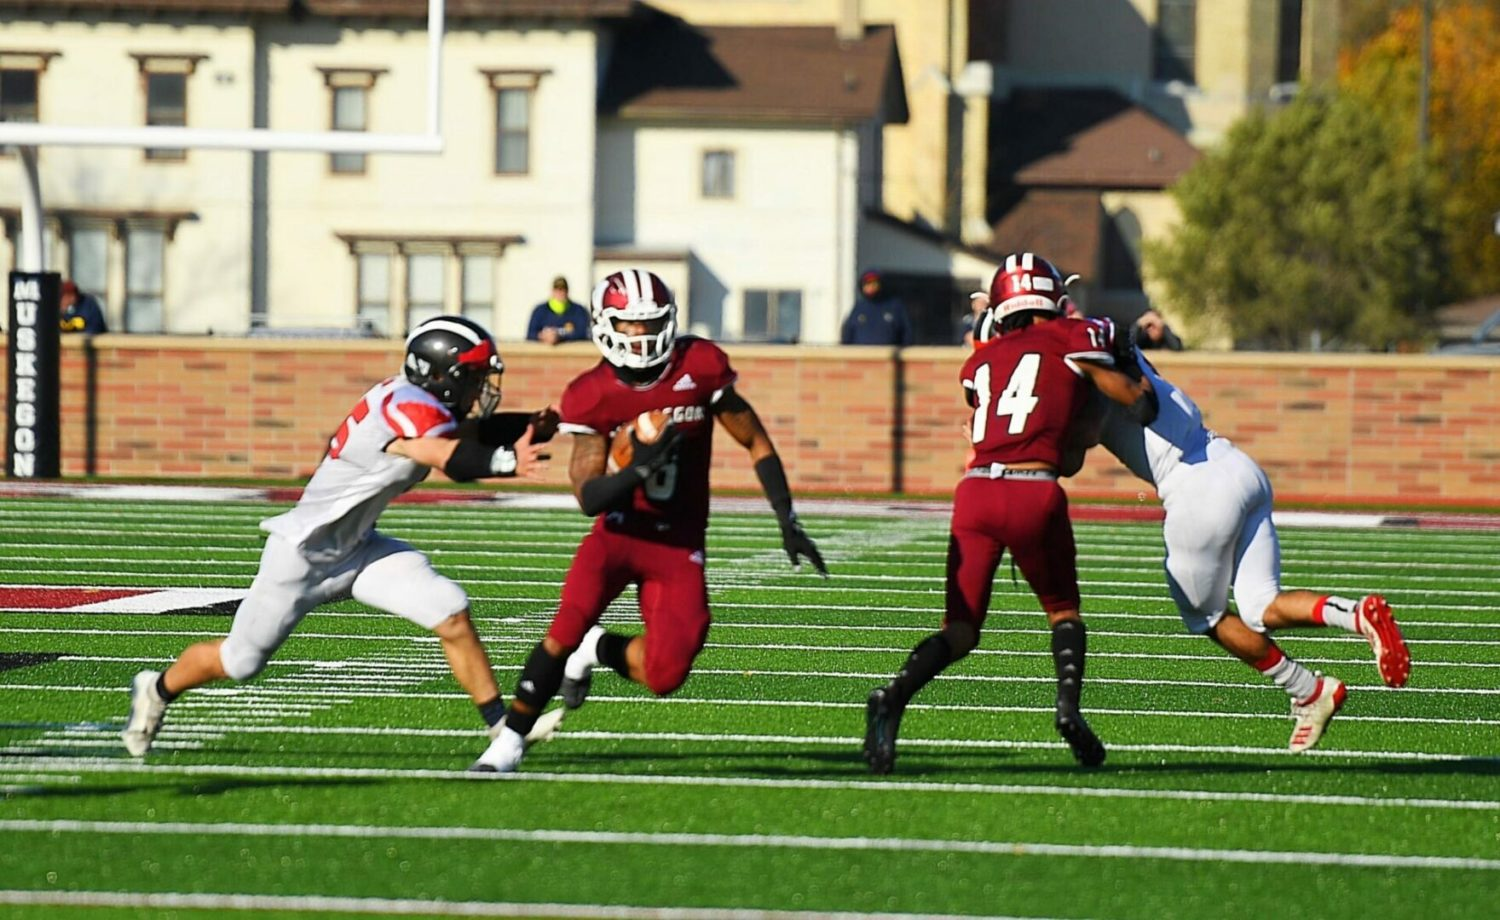 Muskegon Big Reds roll on offense in their 34-12 district semifinal playoff victory over Cedar Springs